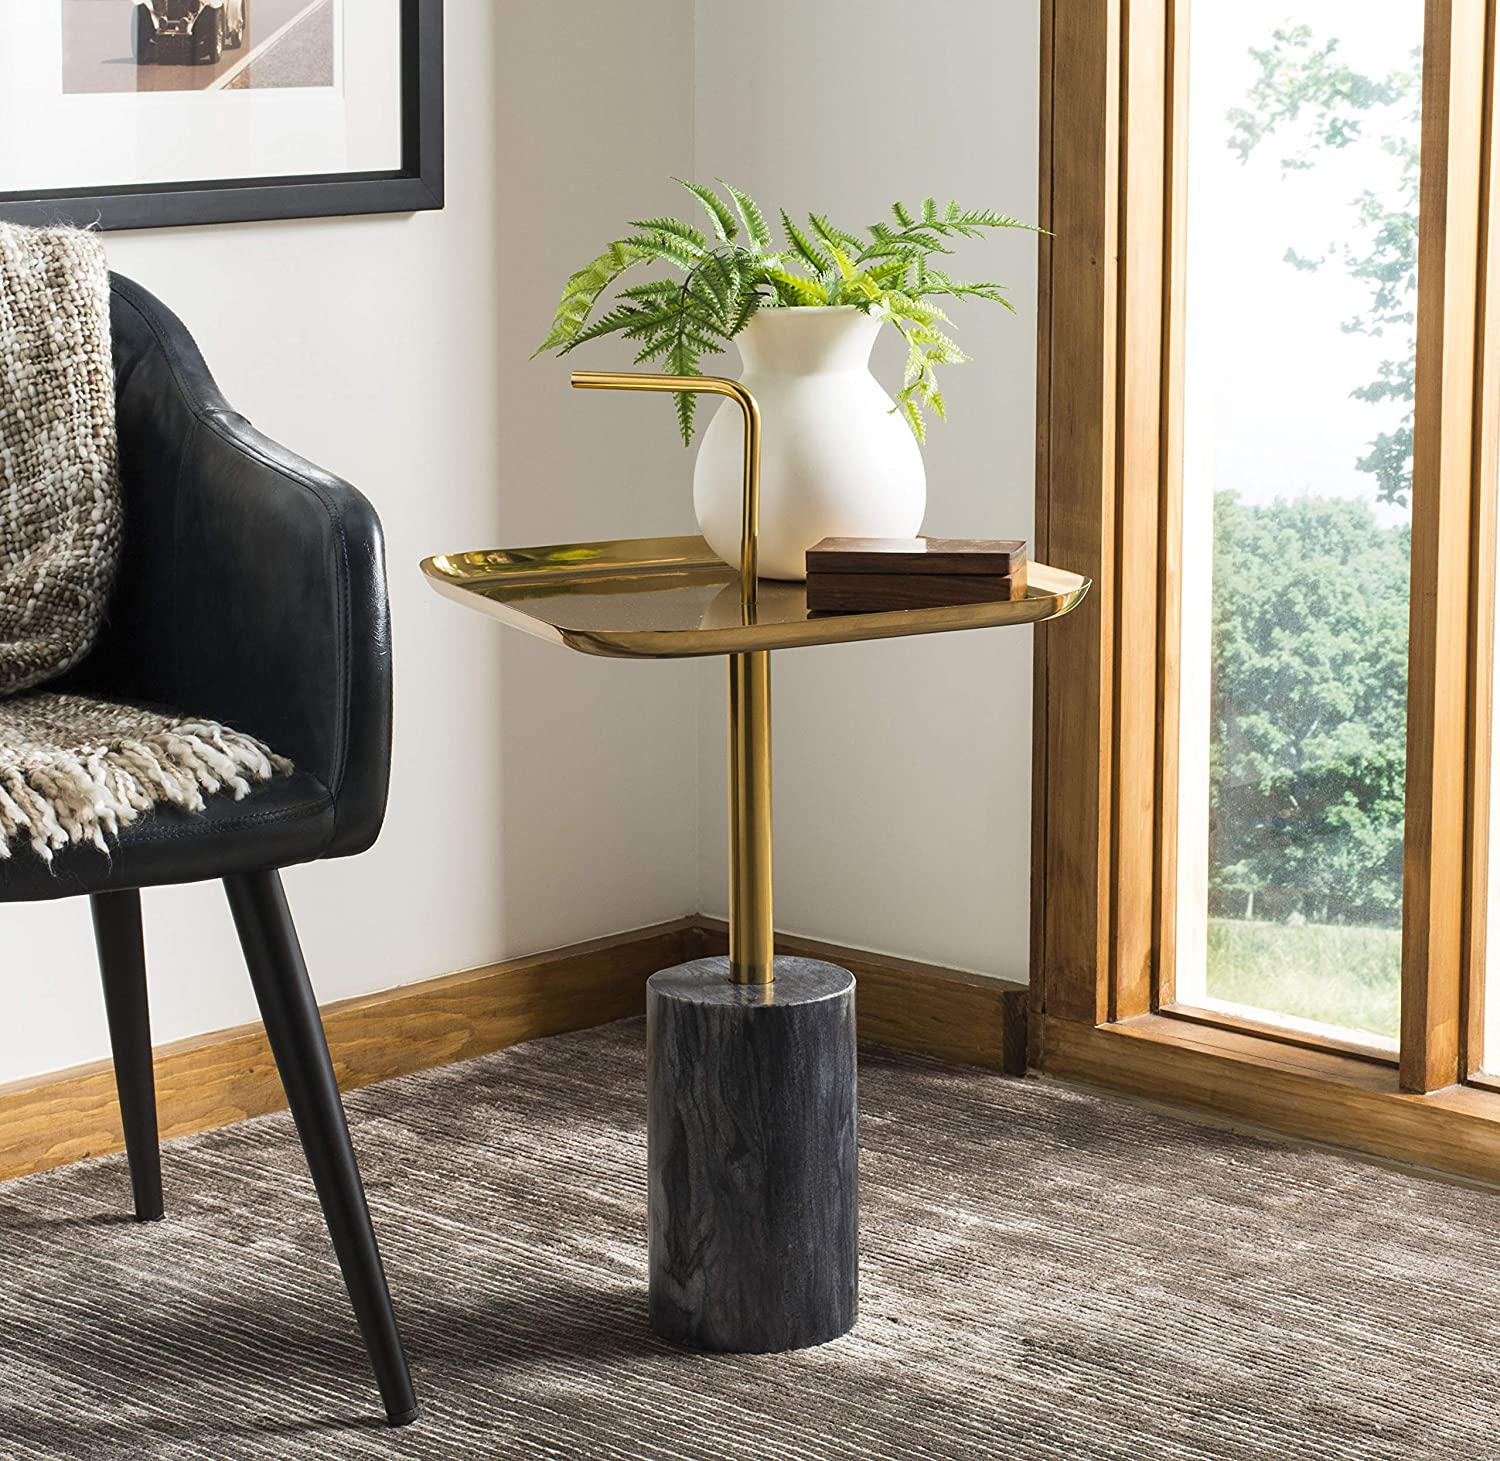 Safavieh Home Artemis Brass Handle Max 67% OFF Table Animer and price revision Black Marble Side